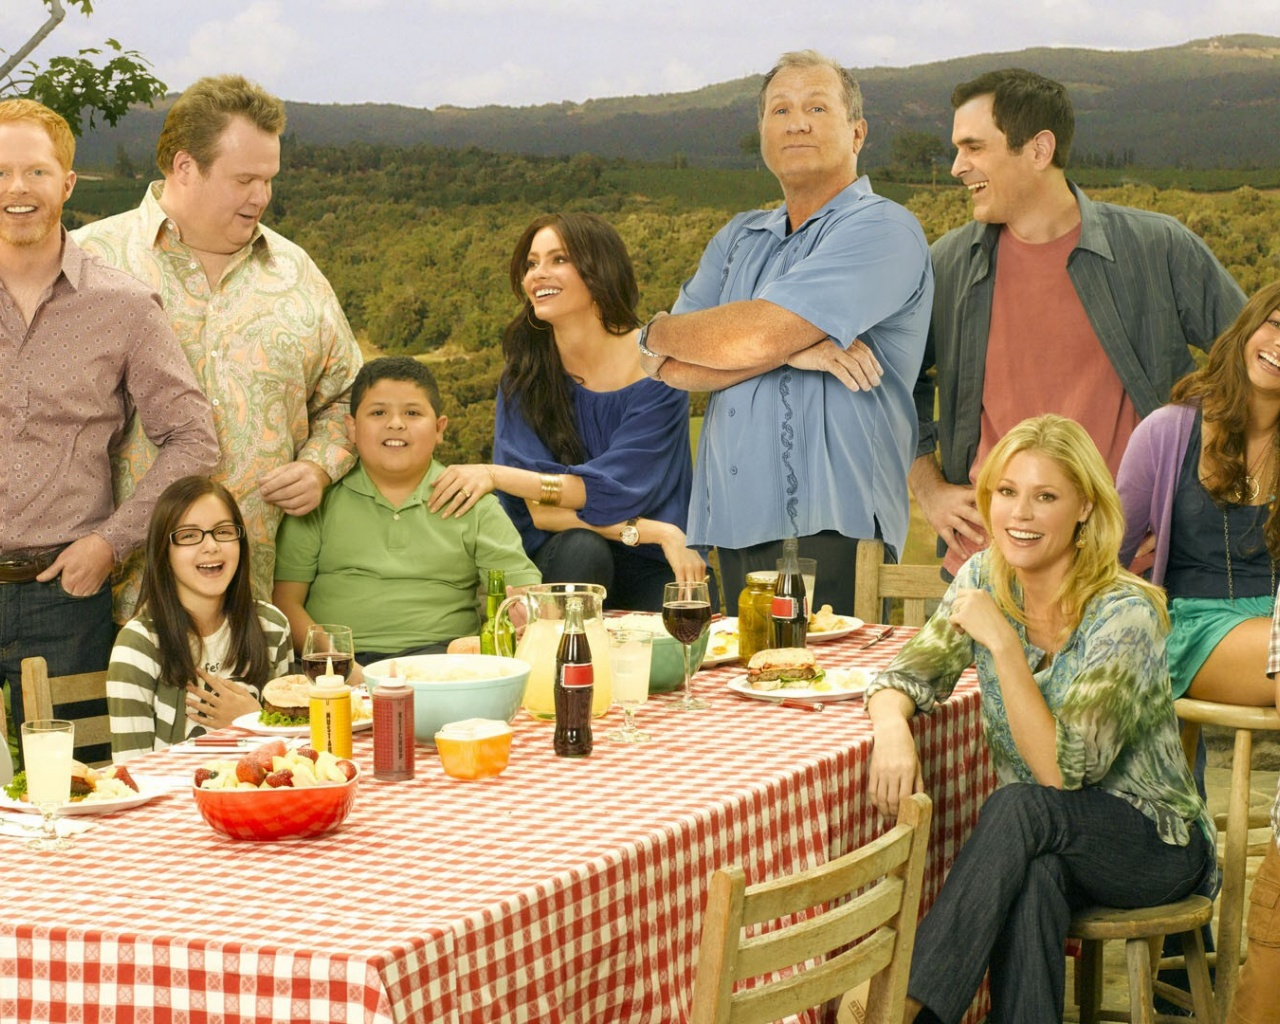 1280x1024 modern family cast desktop pc and mac wallpaper for Modern family wallpaper